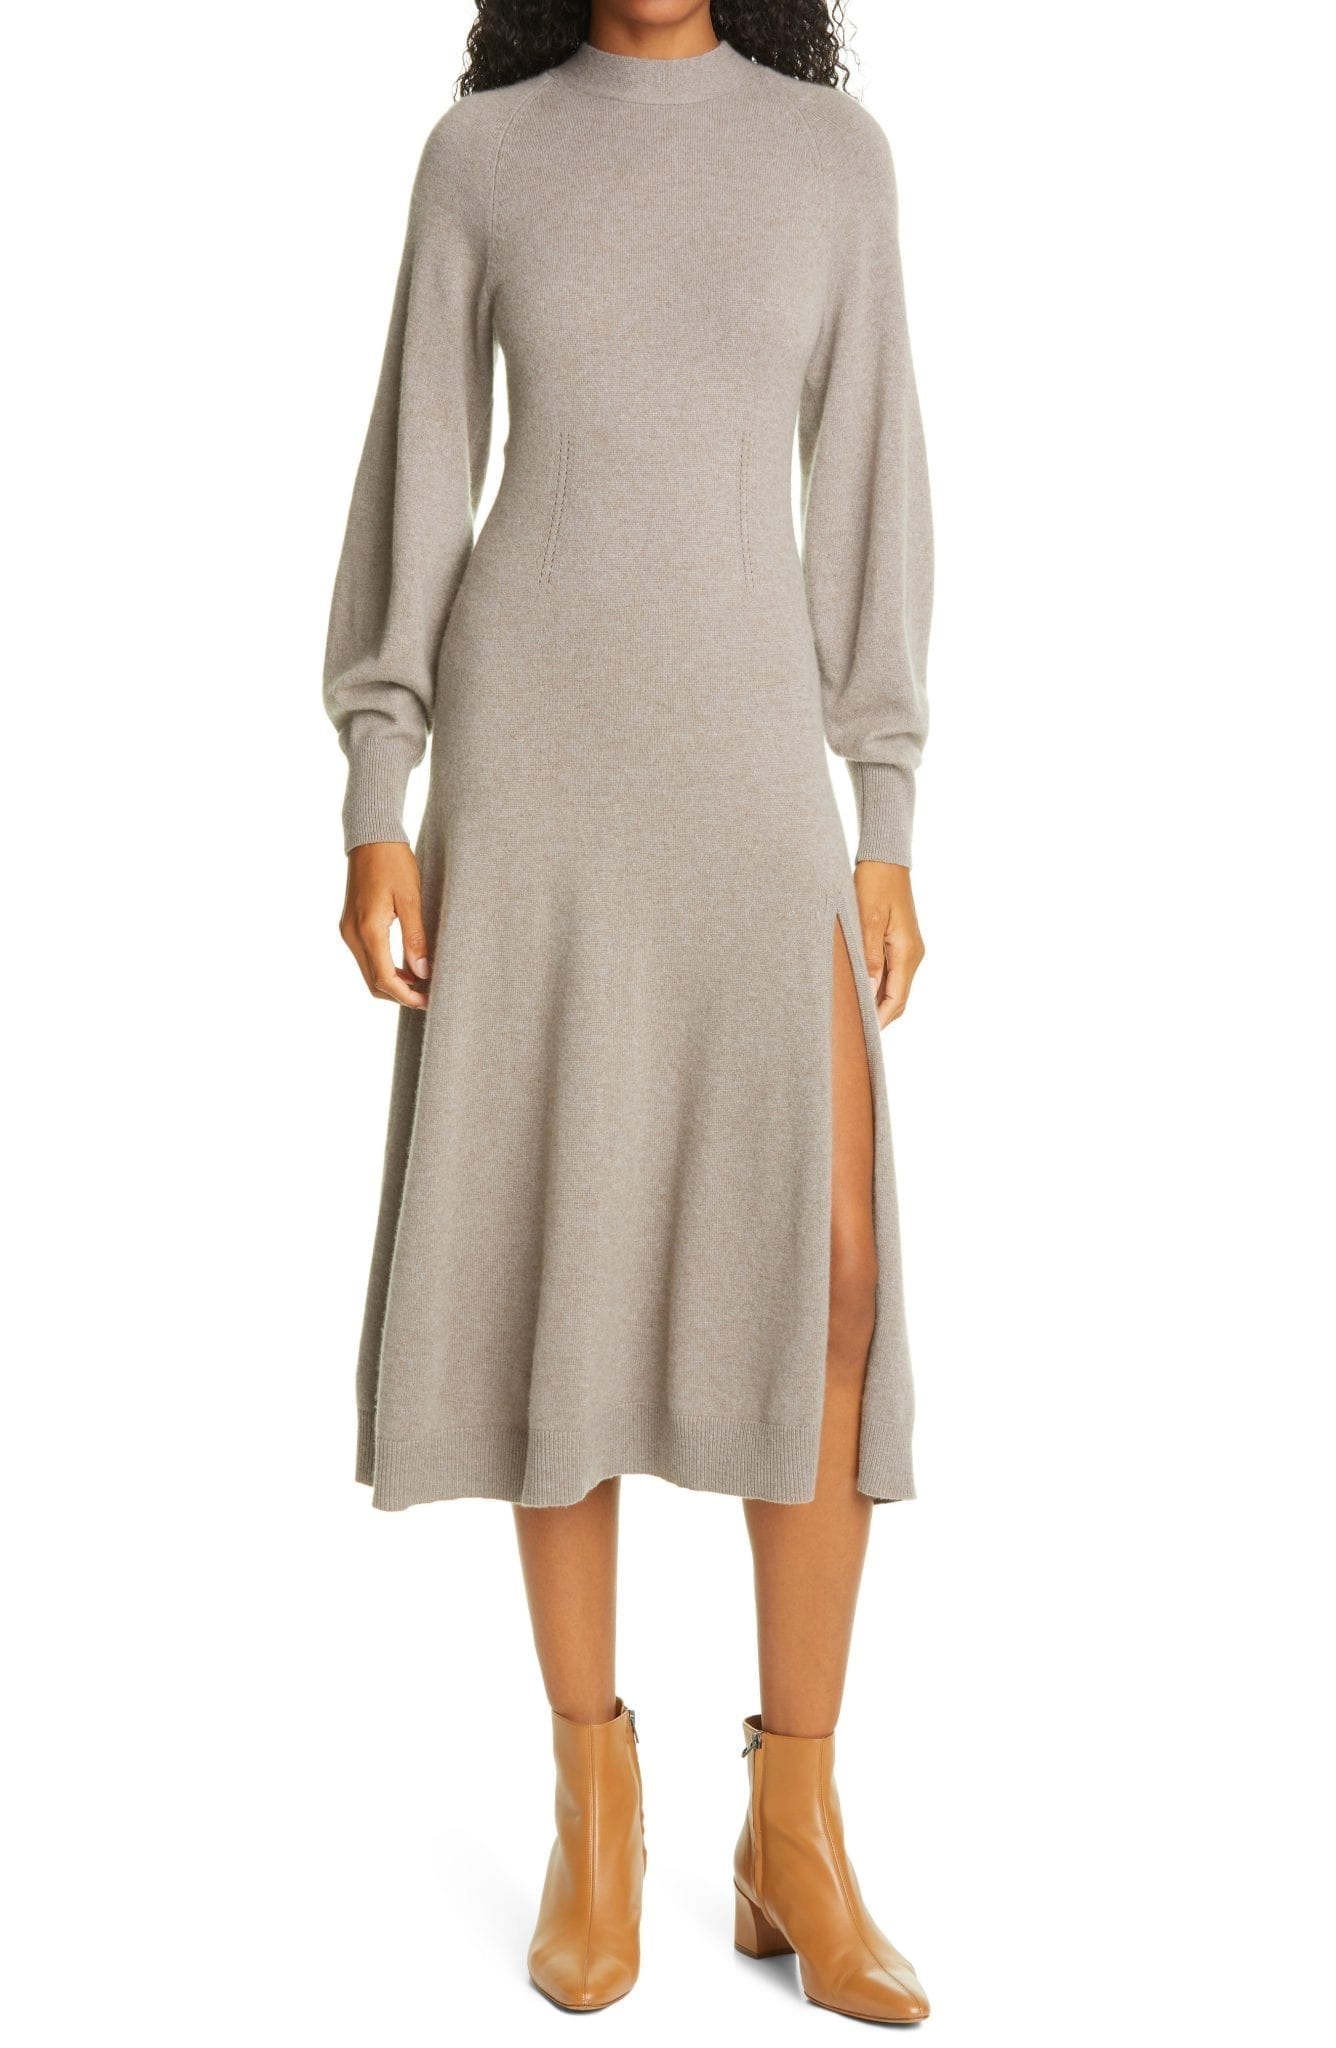 JONATHAN SIMKHAI Brielle Long Sleeve Cashmere Sweater Dress